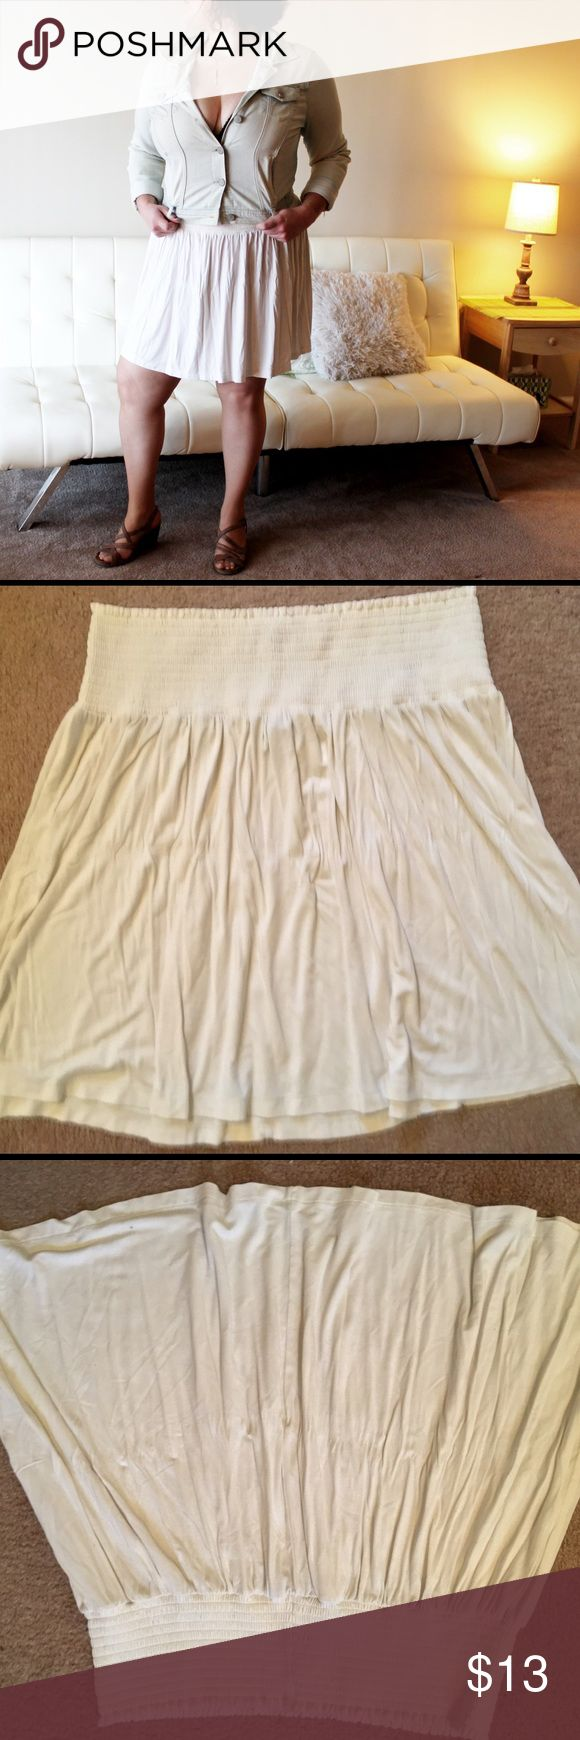 Off-White/Beige Skirt (H&M) ➼Item description Item: Skirt Brand: H&M Color: Off-White/Beige Size: L Fabric: 95% viscose, 5% elastane Description: new without tag, never worn, elastic waist  ➼Environment All items come from a smoke and pet free home.  ➼Tags #OffWhite #White #Beige #Skirt #ElasticWaist #MidiSkirt #Casual #Comfy #Comfortable H&M Skirts Circle & Skater